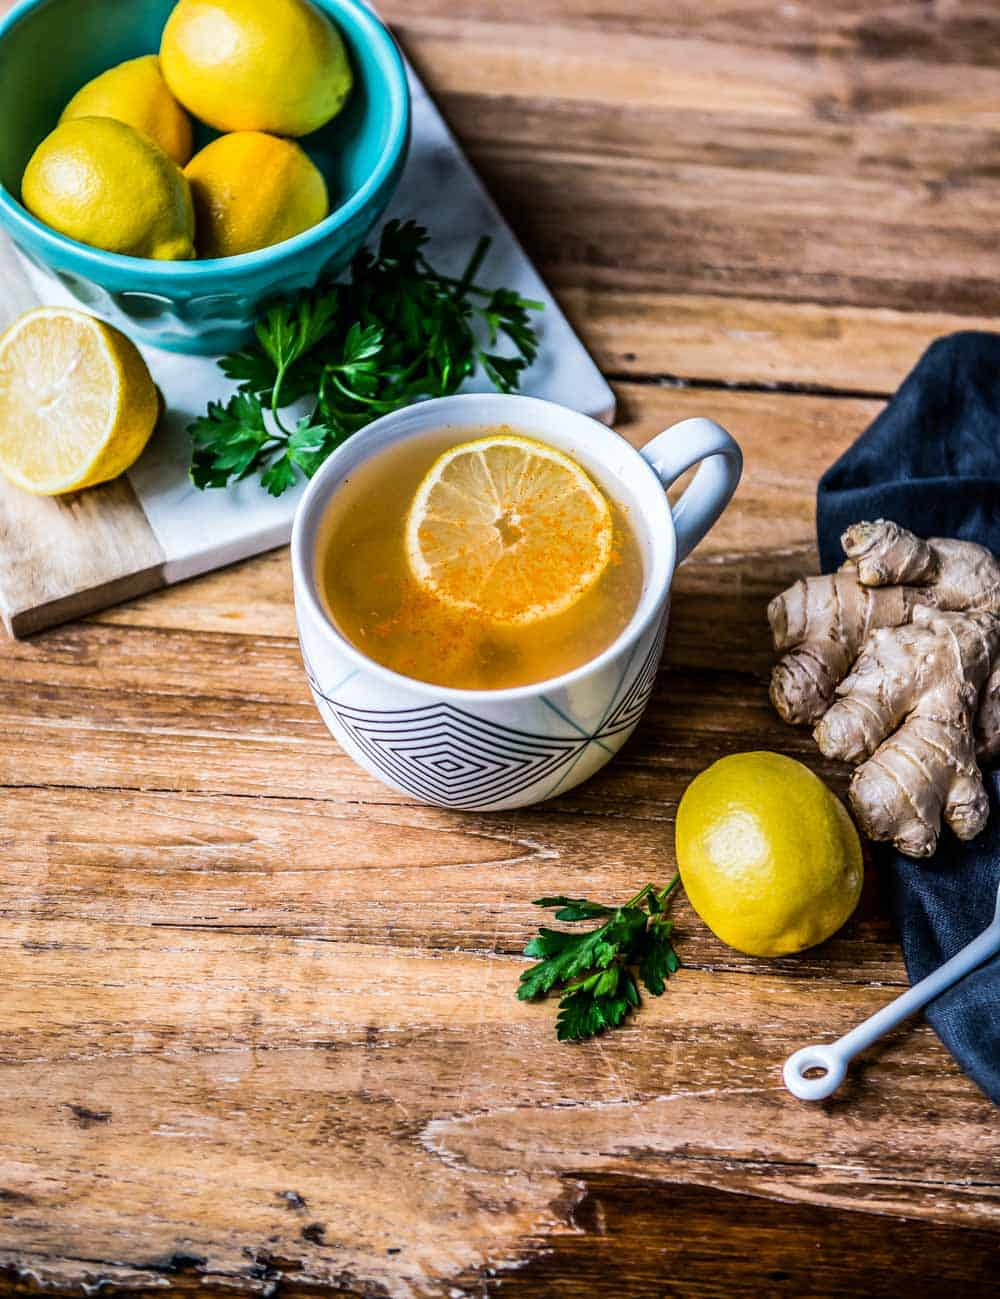 this mug of morning tonic included in our best drinks for weight loss list includes lemon, ginger, parsley, and cayenne.